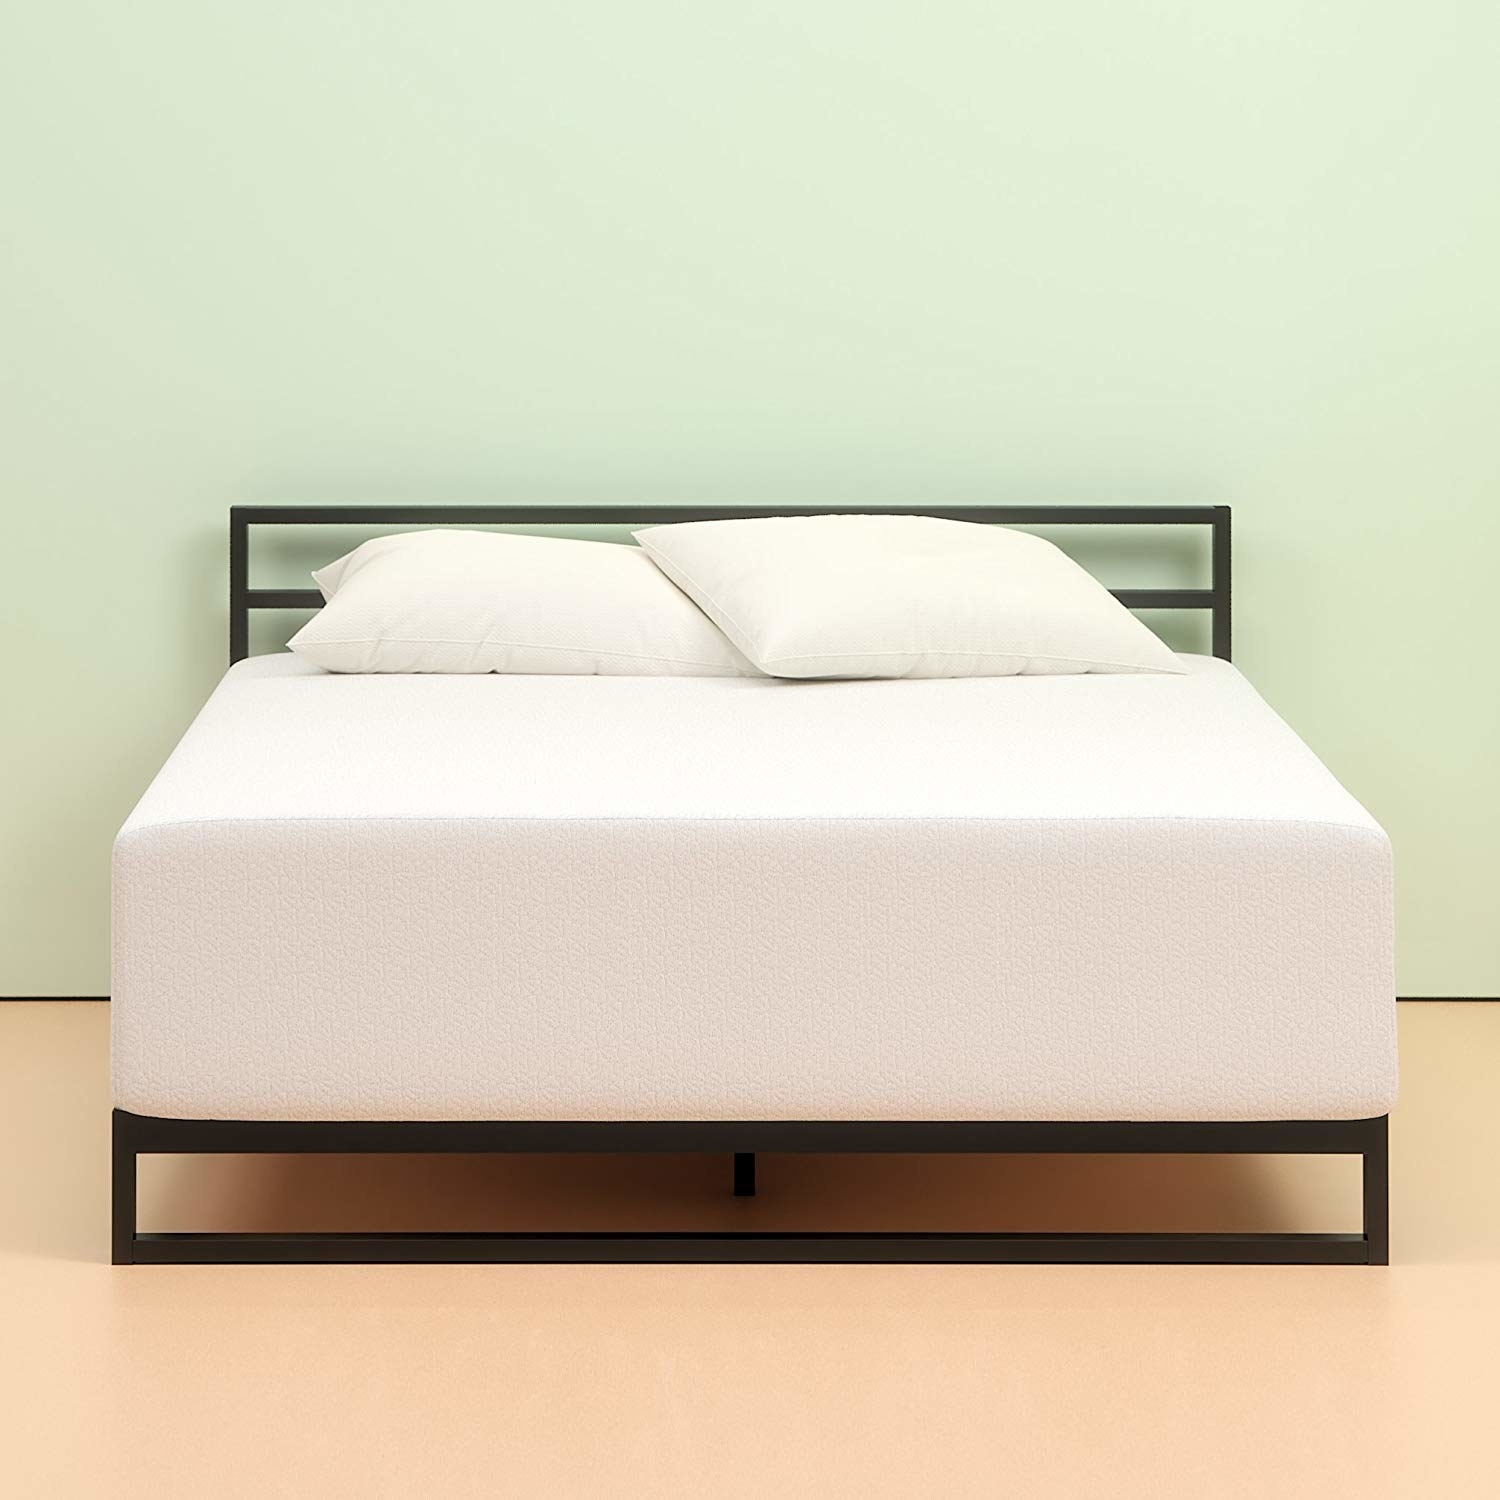 thick white mattress on a bed frame